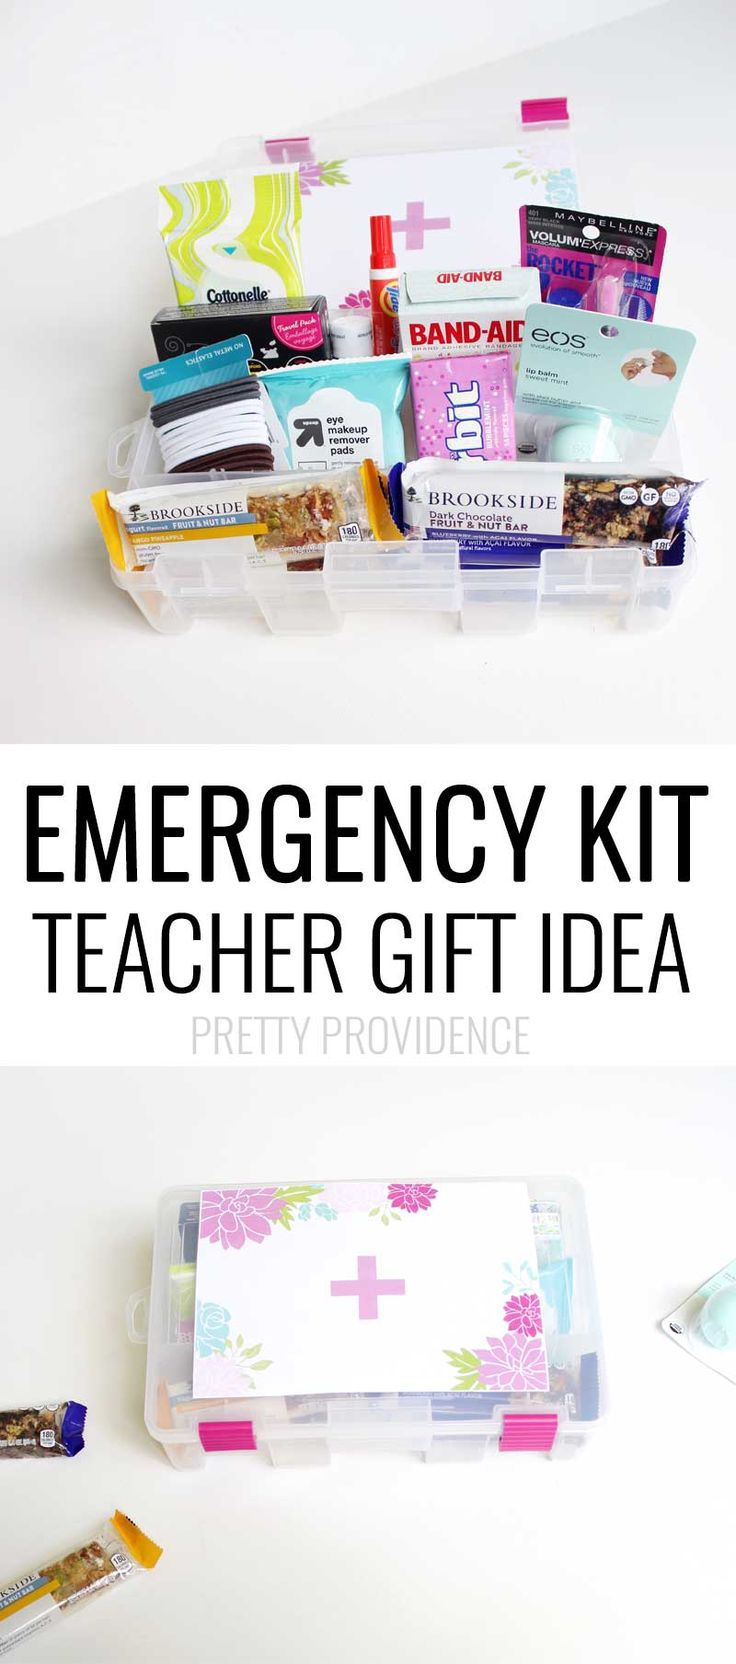 TEACHER Emergency Kit!!! Practical and awesome teacher gift!!   #ad #shareyourBROOKSIDE